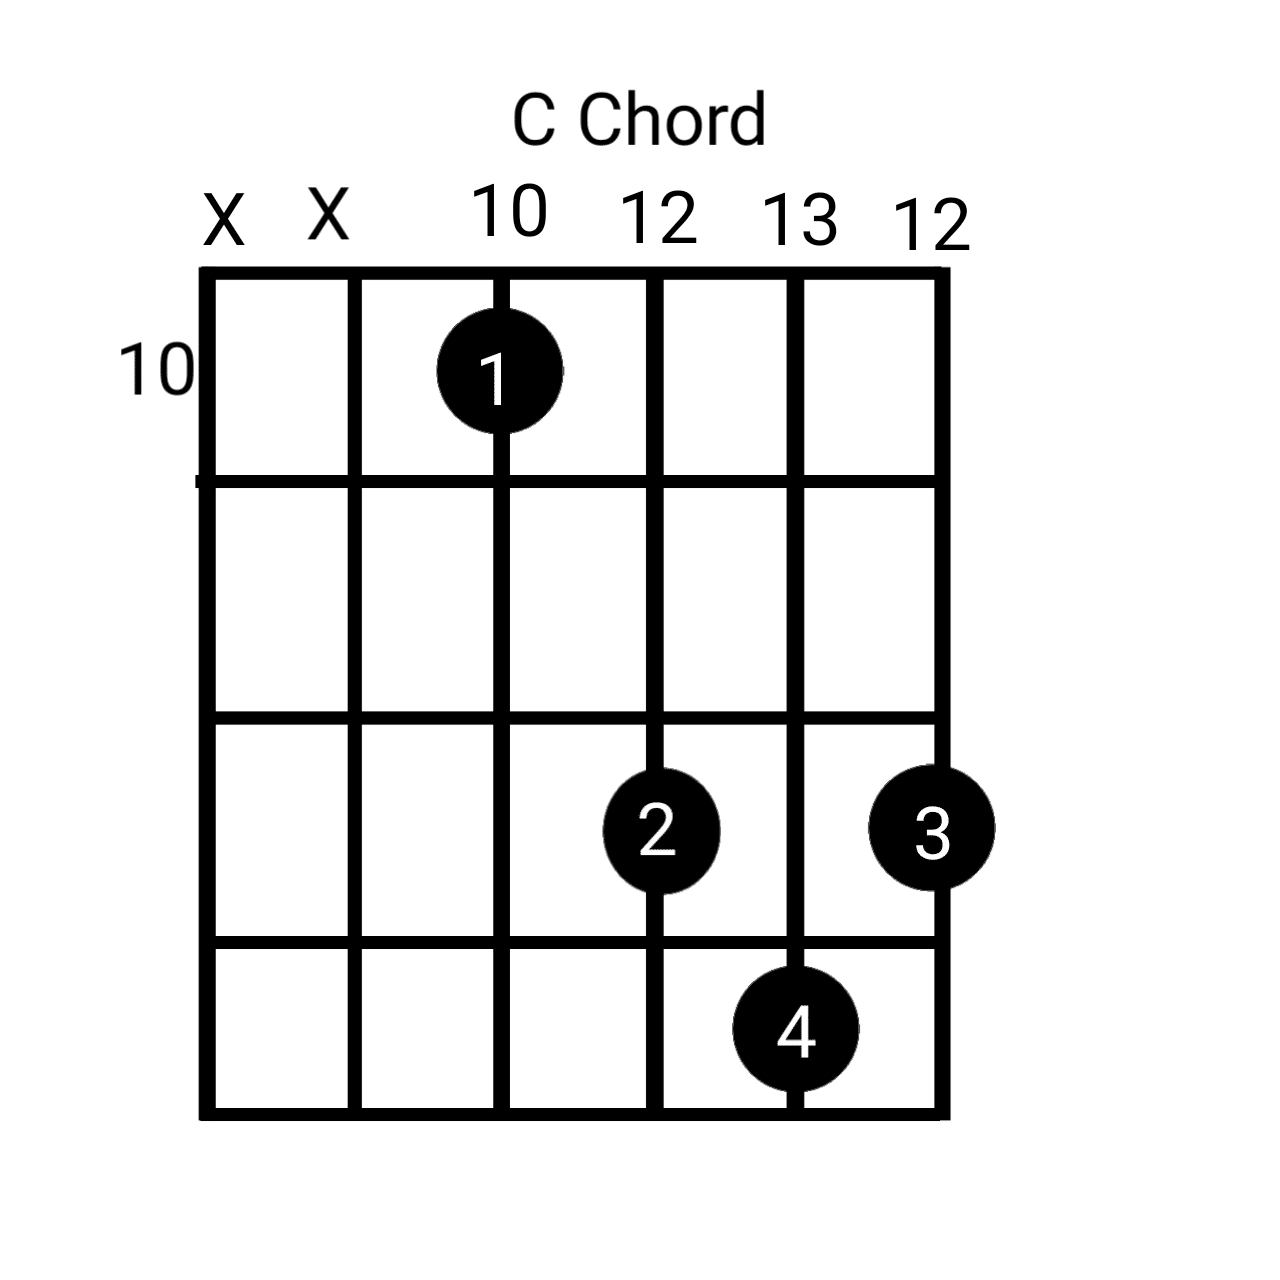 On 10th fret position